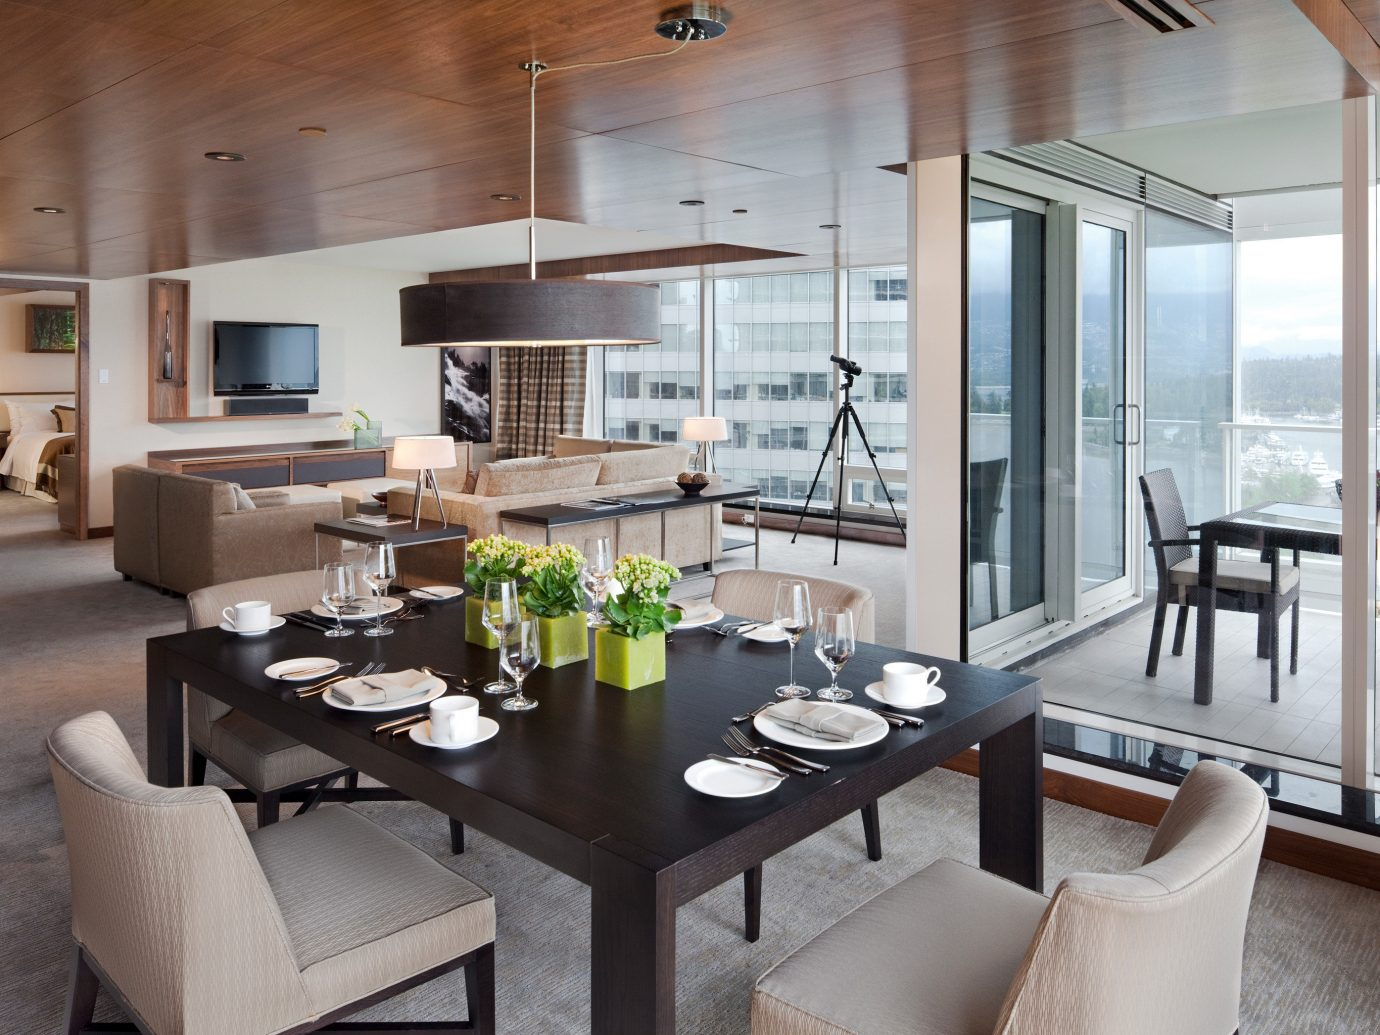 Dining Drink Eat Hotels Modern Scenic views table indoor floor window ceiling room dining room property living room condominium estate interior design home real estate Design Suite Villa yacht apartment furniture area Island Bar dining table